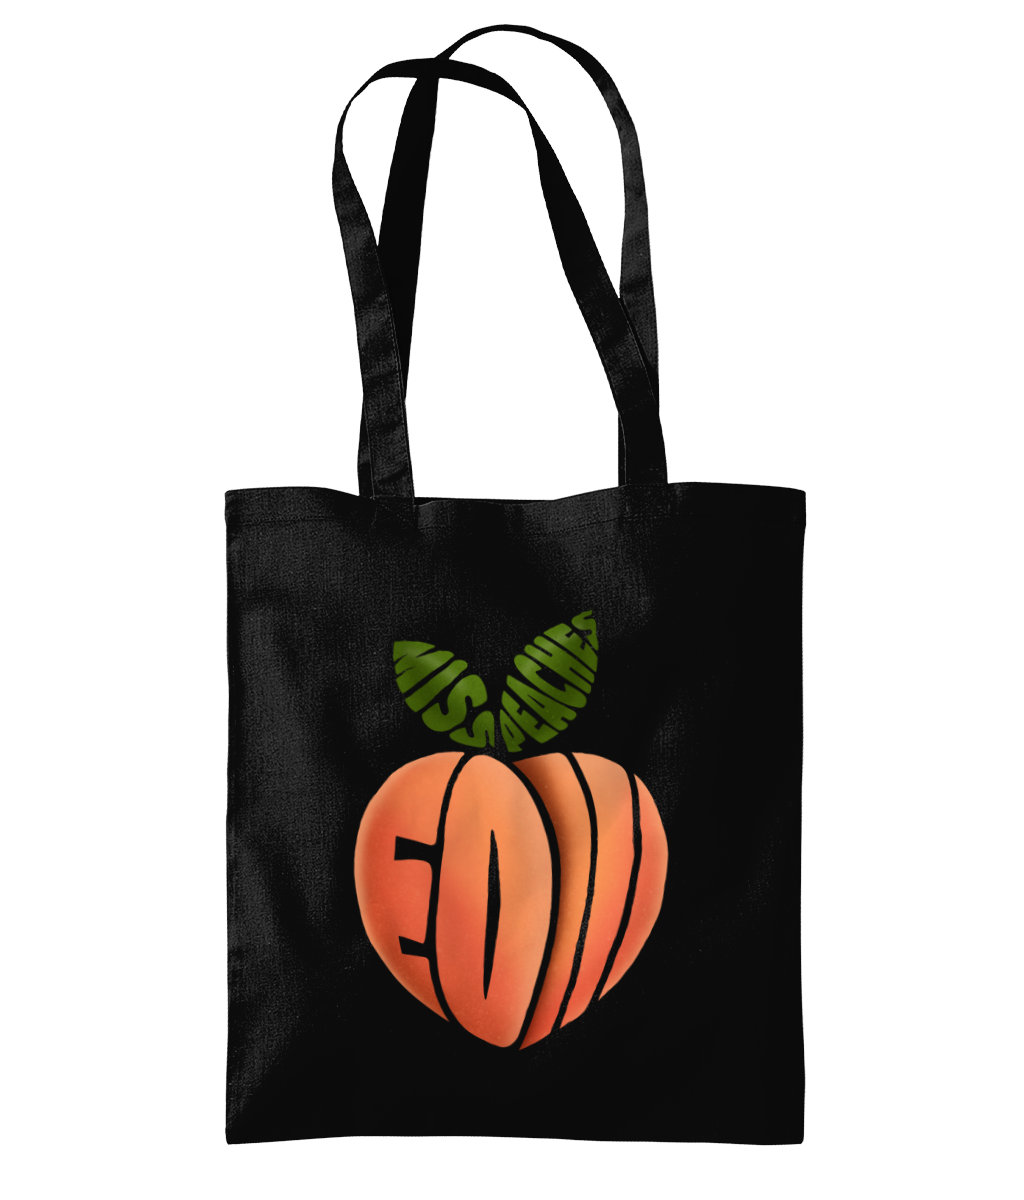 Miss Peaches - EOI Tote Bag - SNATCHED